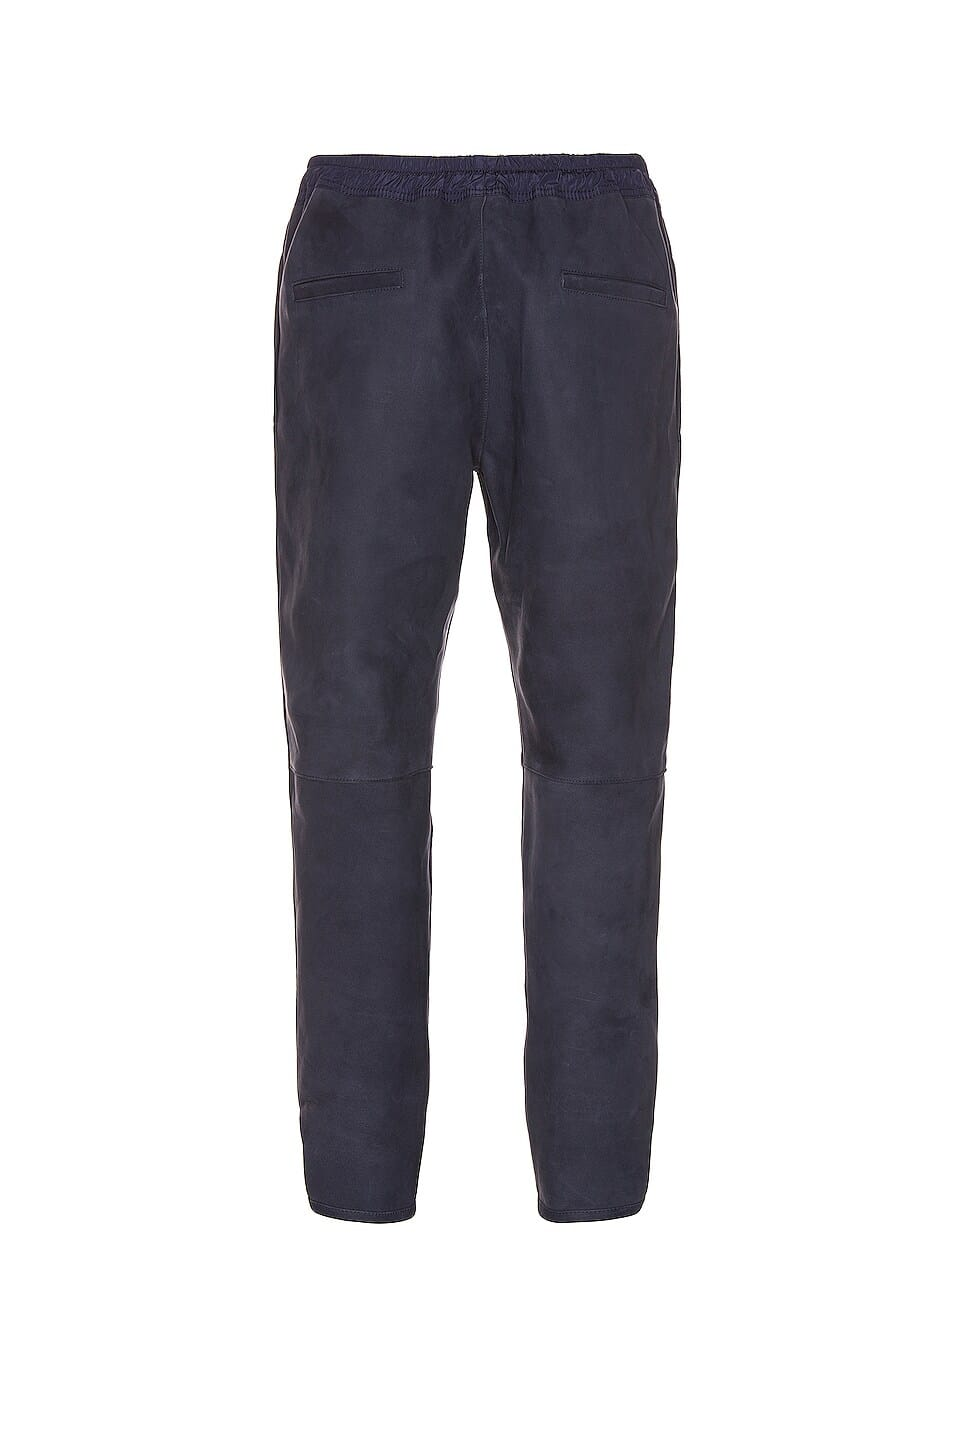 Fear of God Suede Track Pant